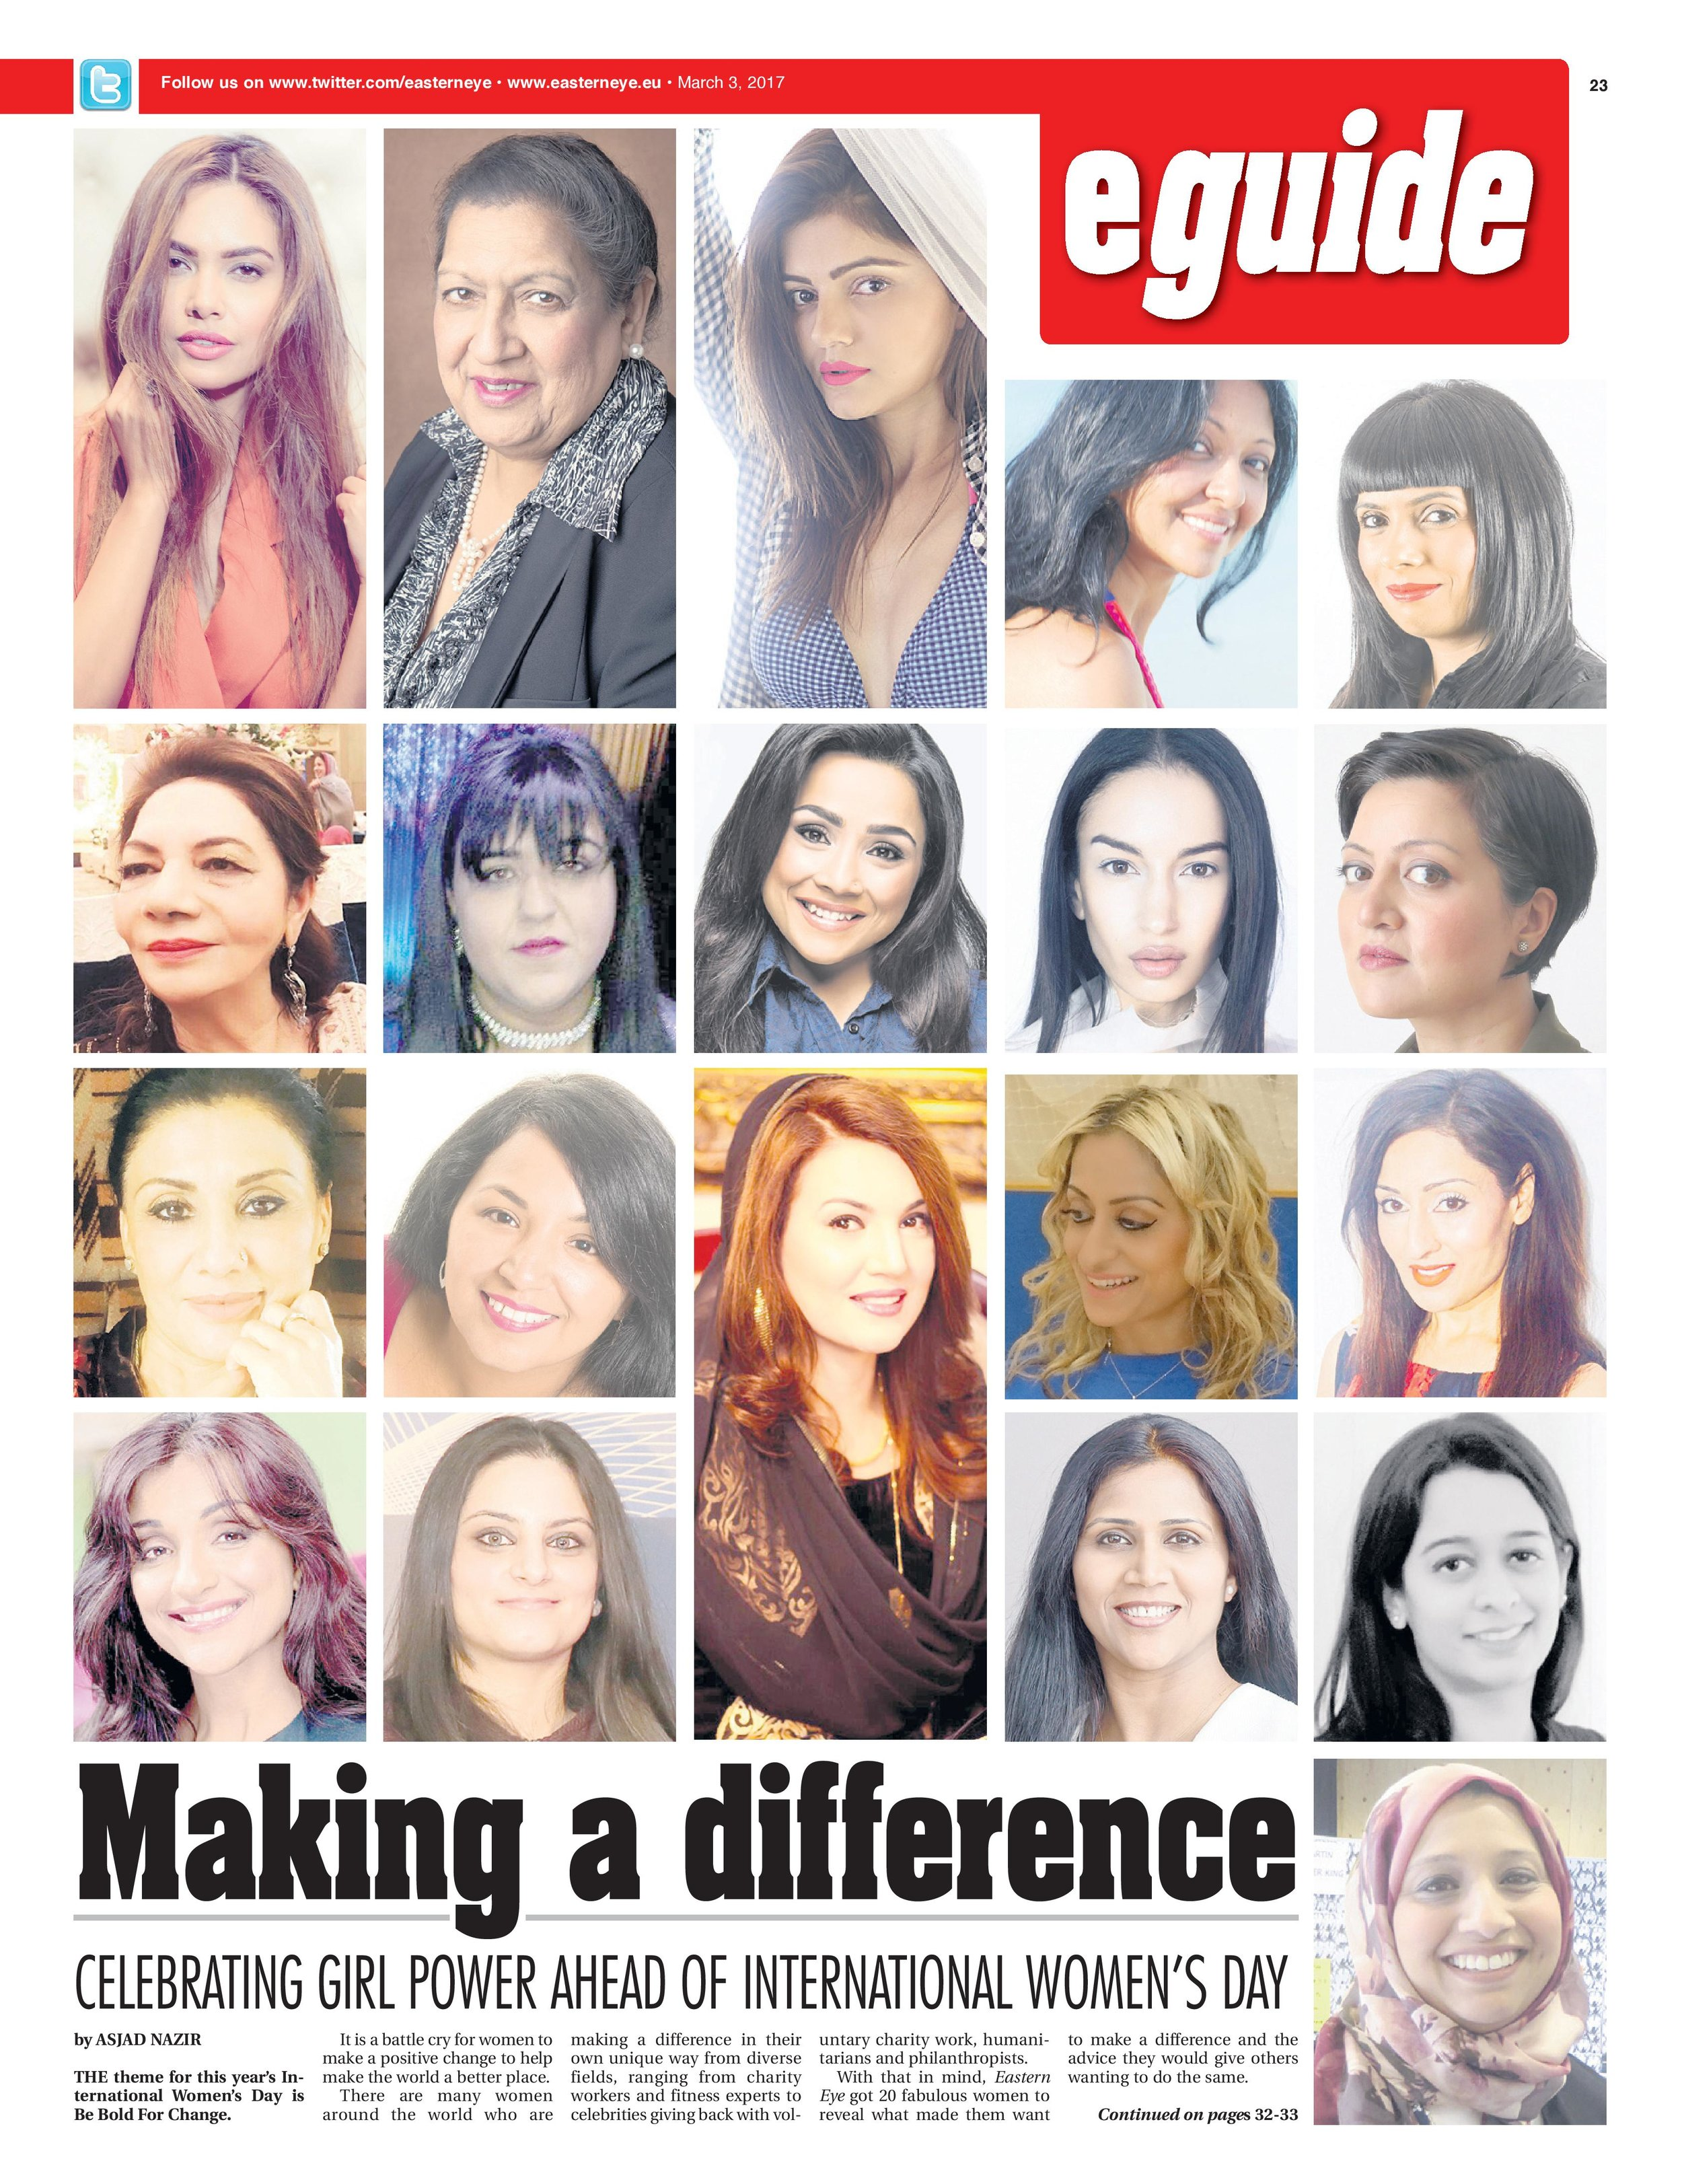 Featured as one of the UK's leading British Asian Influencers in Eastern Eye in March 2017